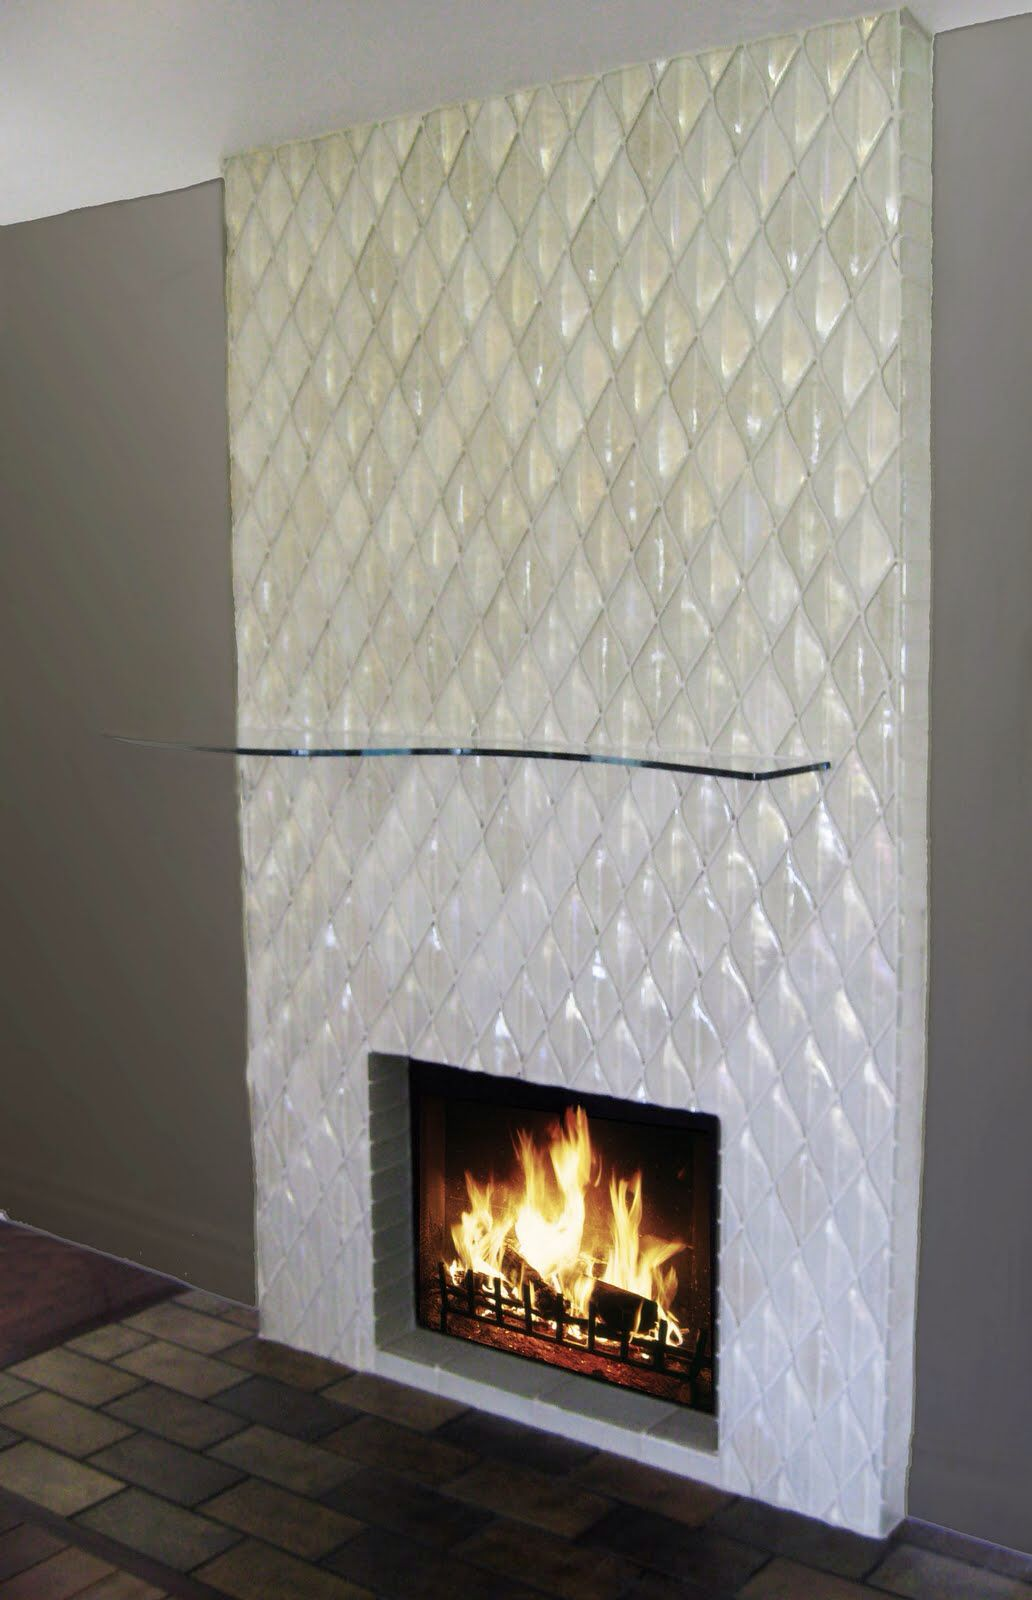 Image from http://www.luxtica.com/images/contemporary-fireplace-tile-designs-alpentile-contemporary-glass-tile-fireplace-installation-10561.jpg.